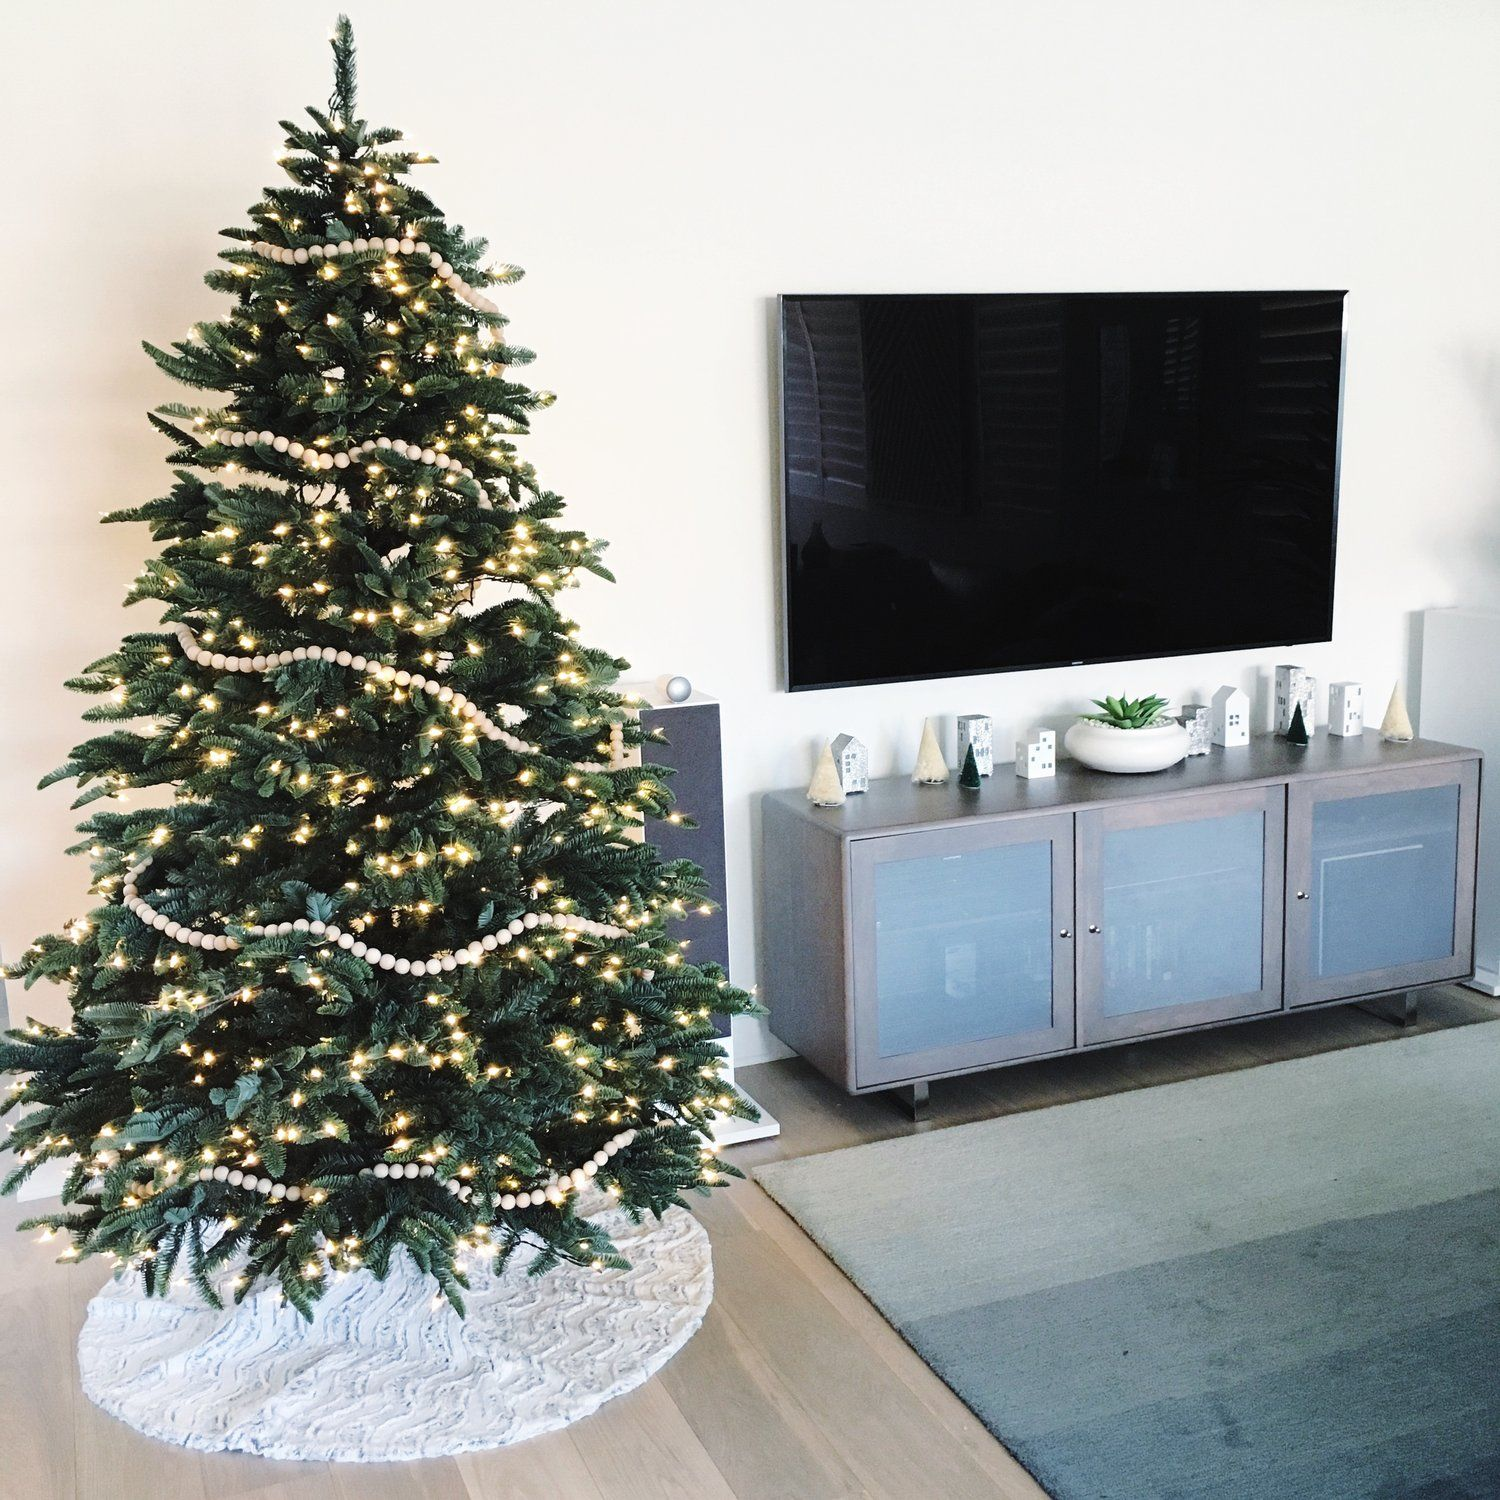 Keep your Christmas simple with this tree adorned with a DIY